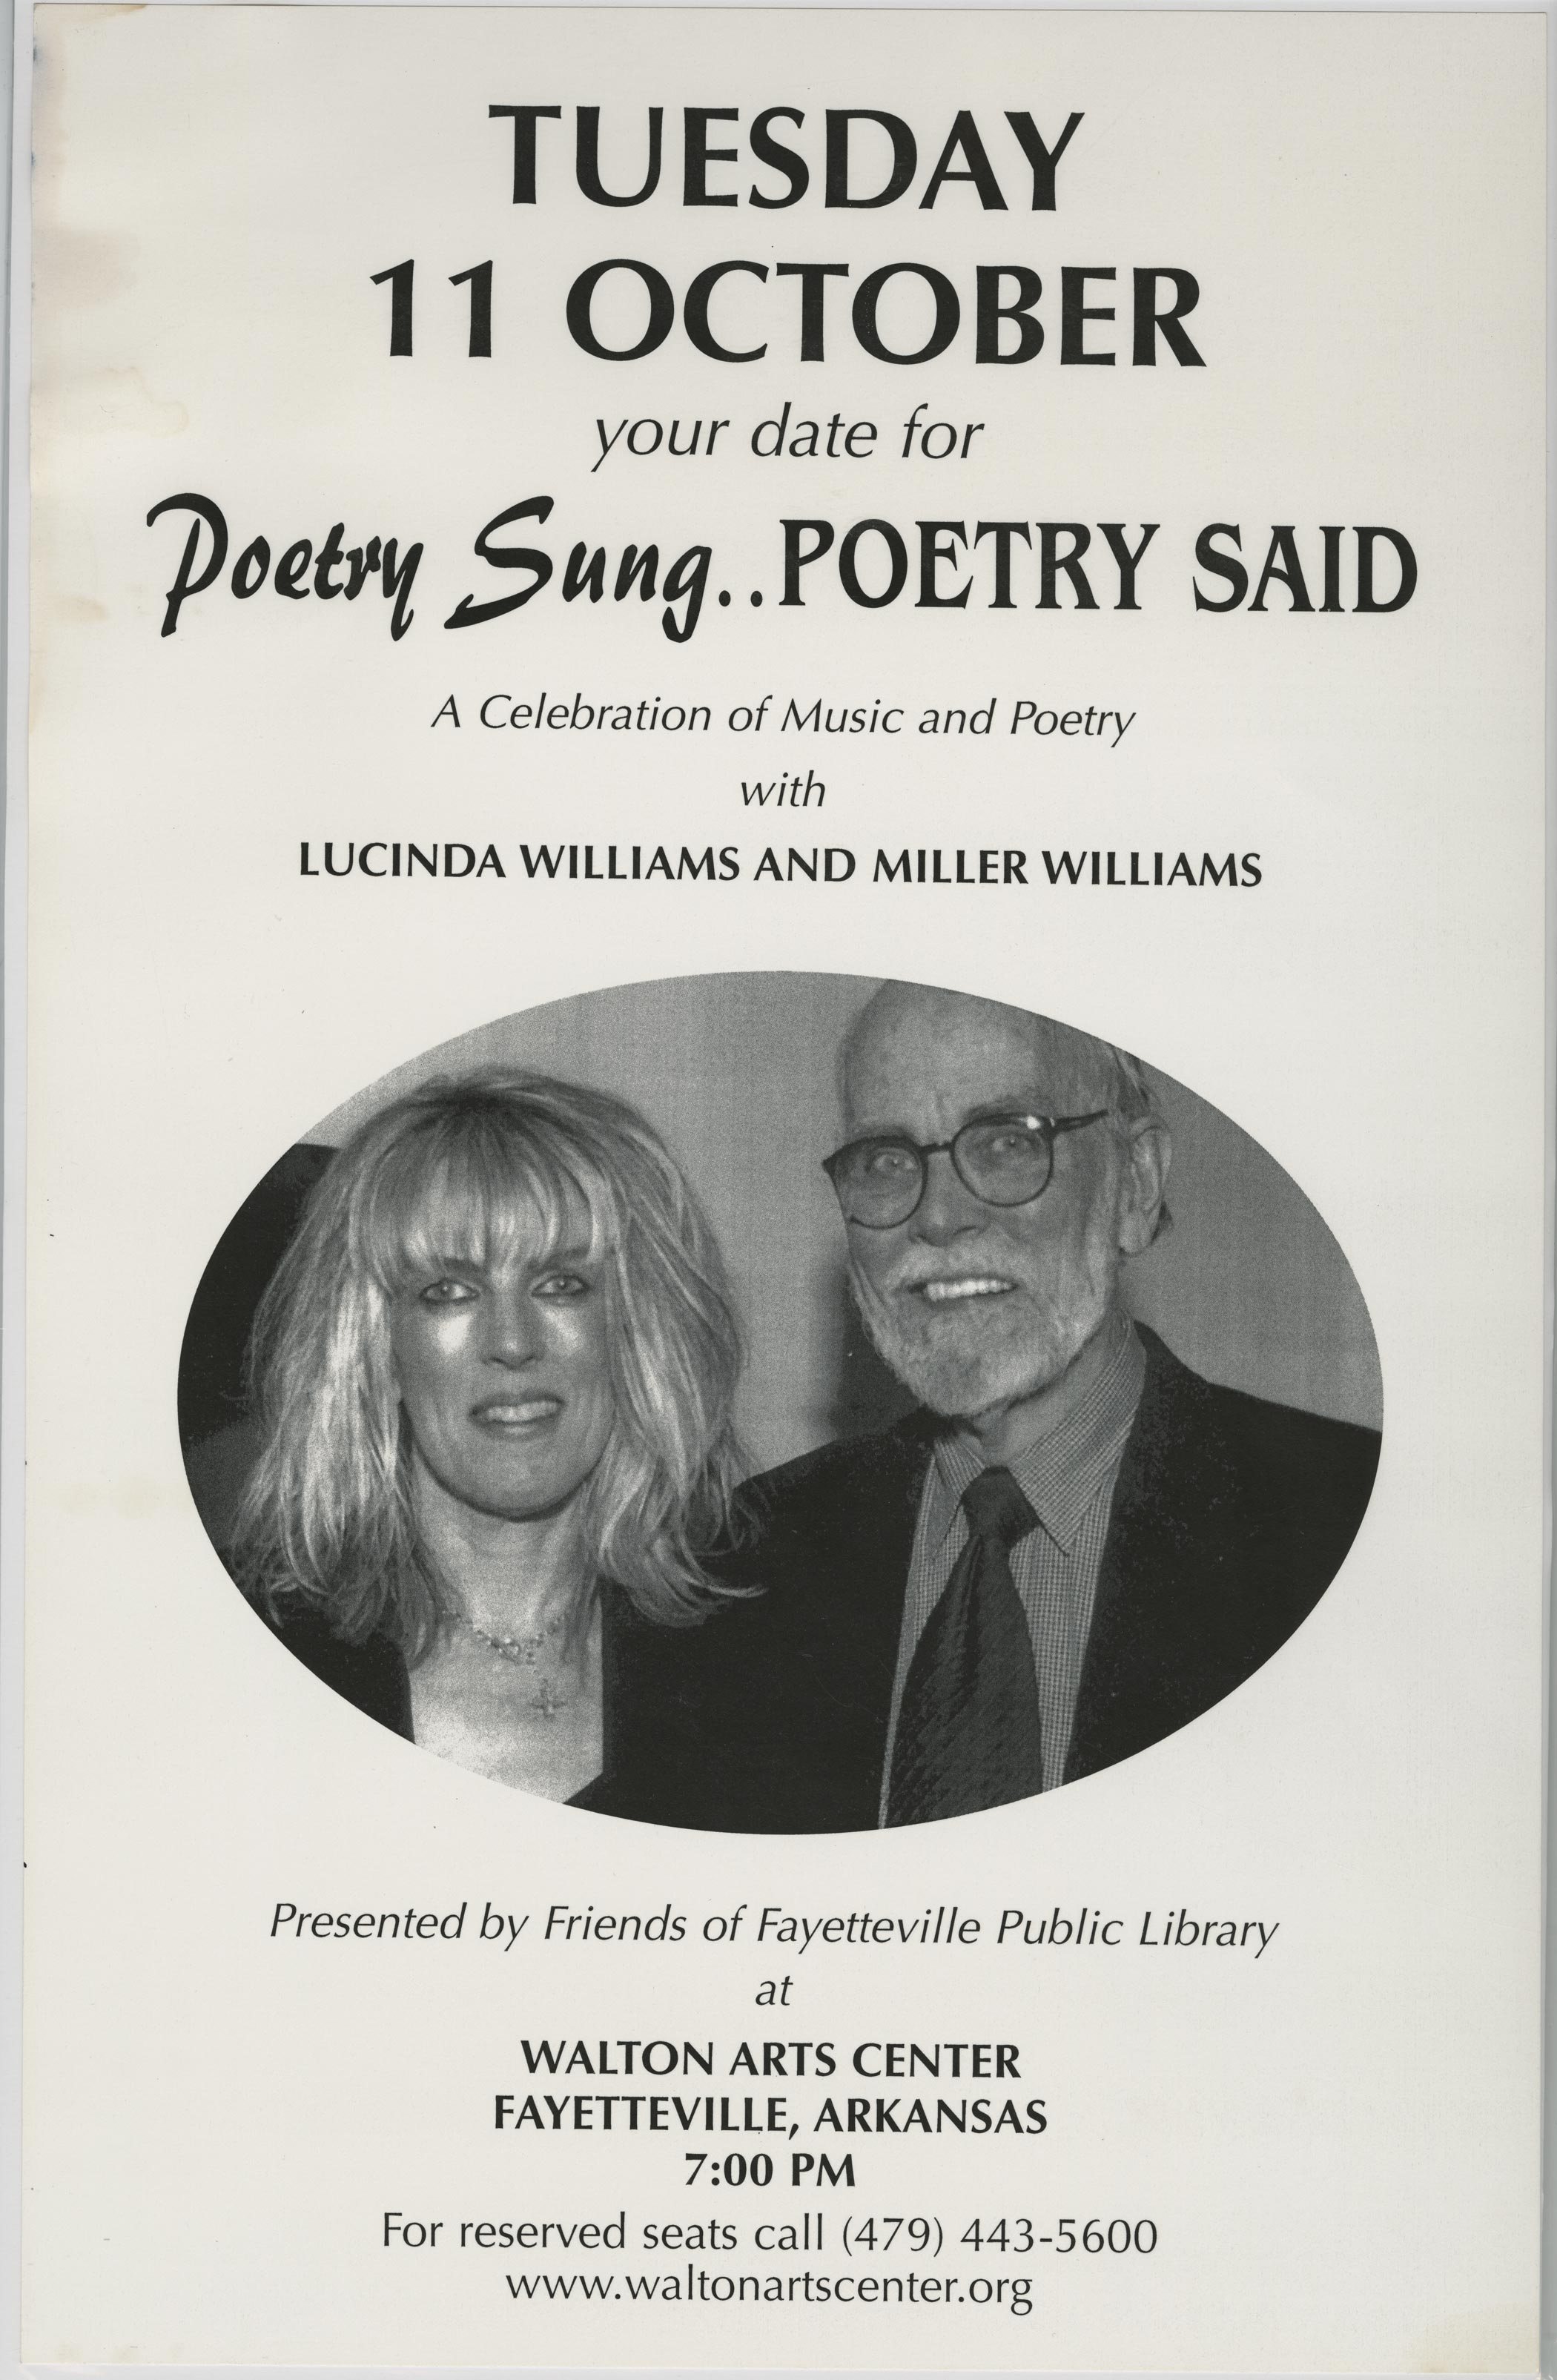 """A poster for """"Poetry Sung...Poetry Said: A Celebration of Music and Poetry with Lucinda Williams and Miller Williams."""""""